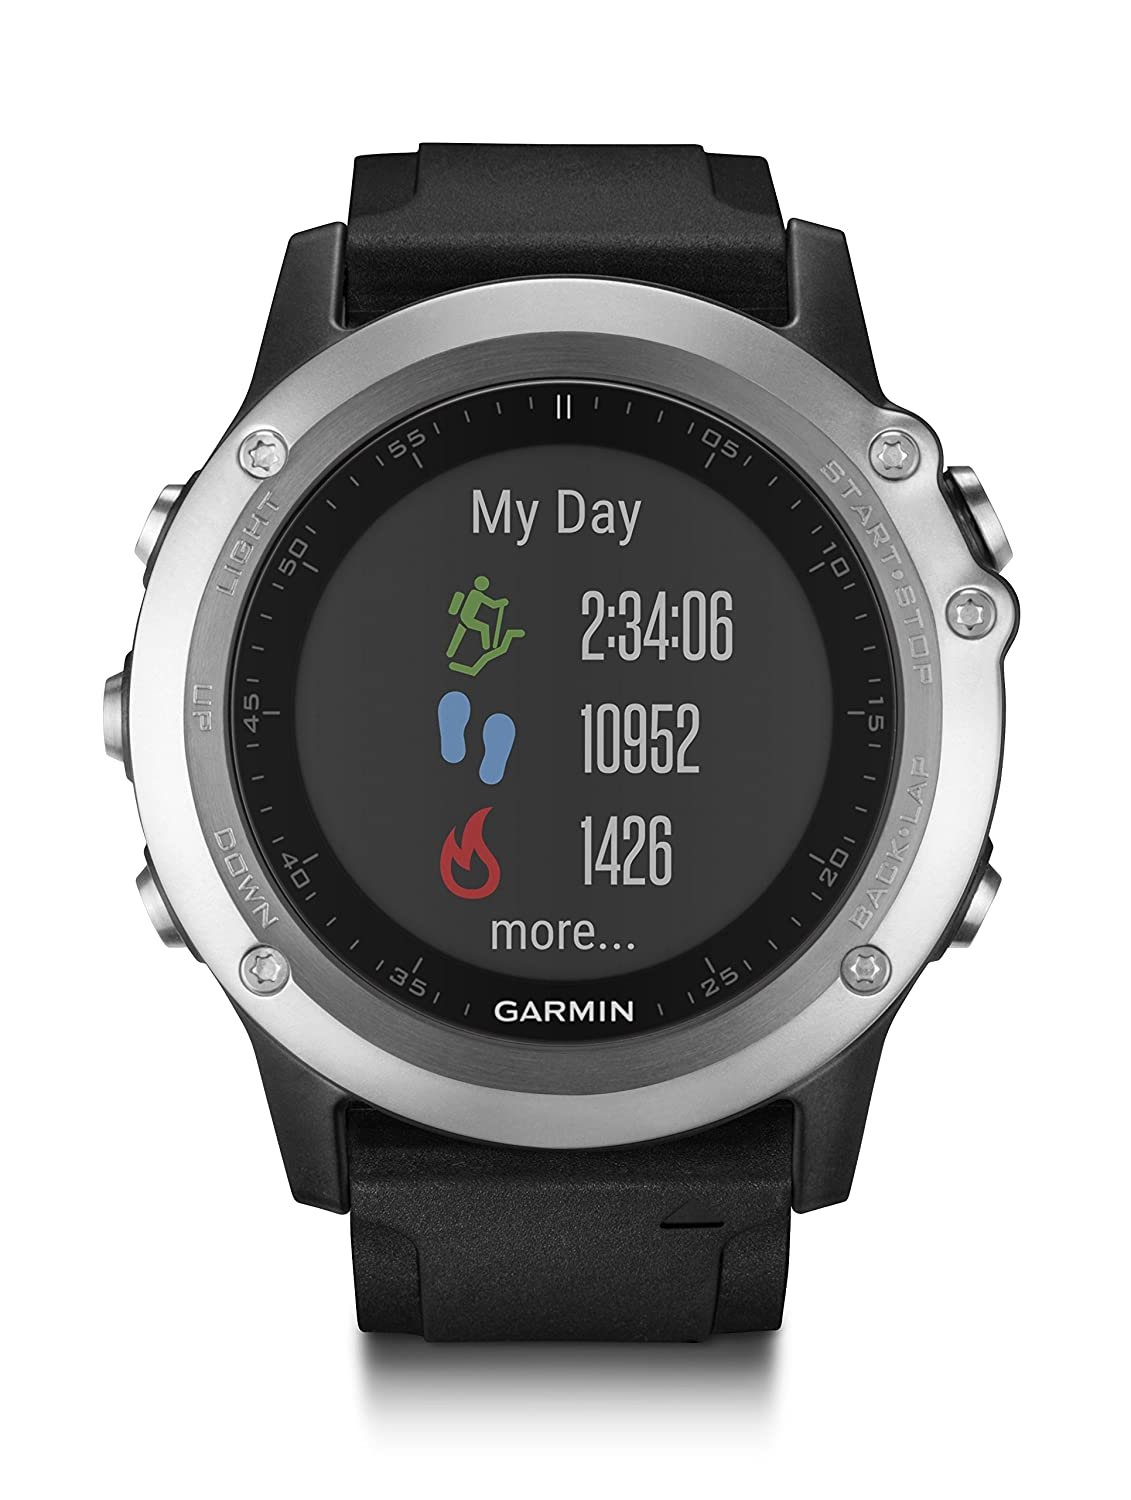 outdoor variety sports maps is watch features wiredexcellent rugged fenix smart best accessories a powerful tracking multisport of can activities feature supports review navigation you range buy watches the and garmin wide in ta